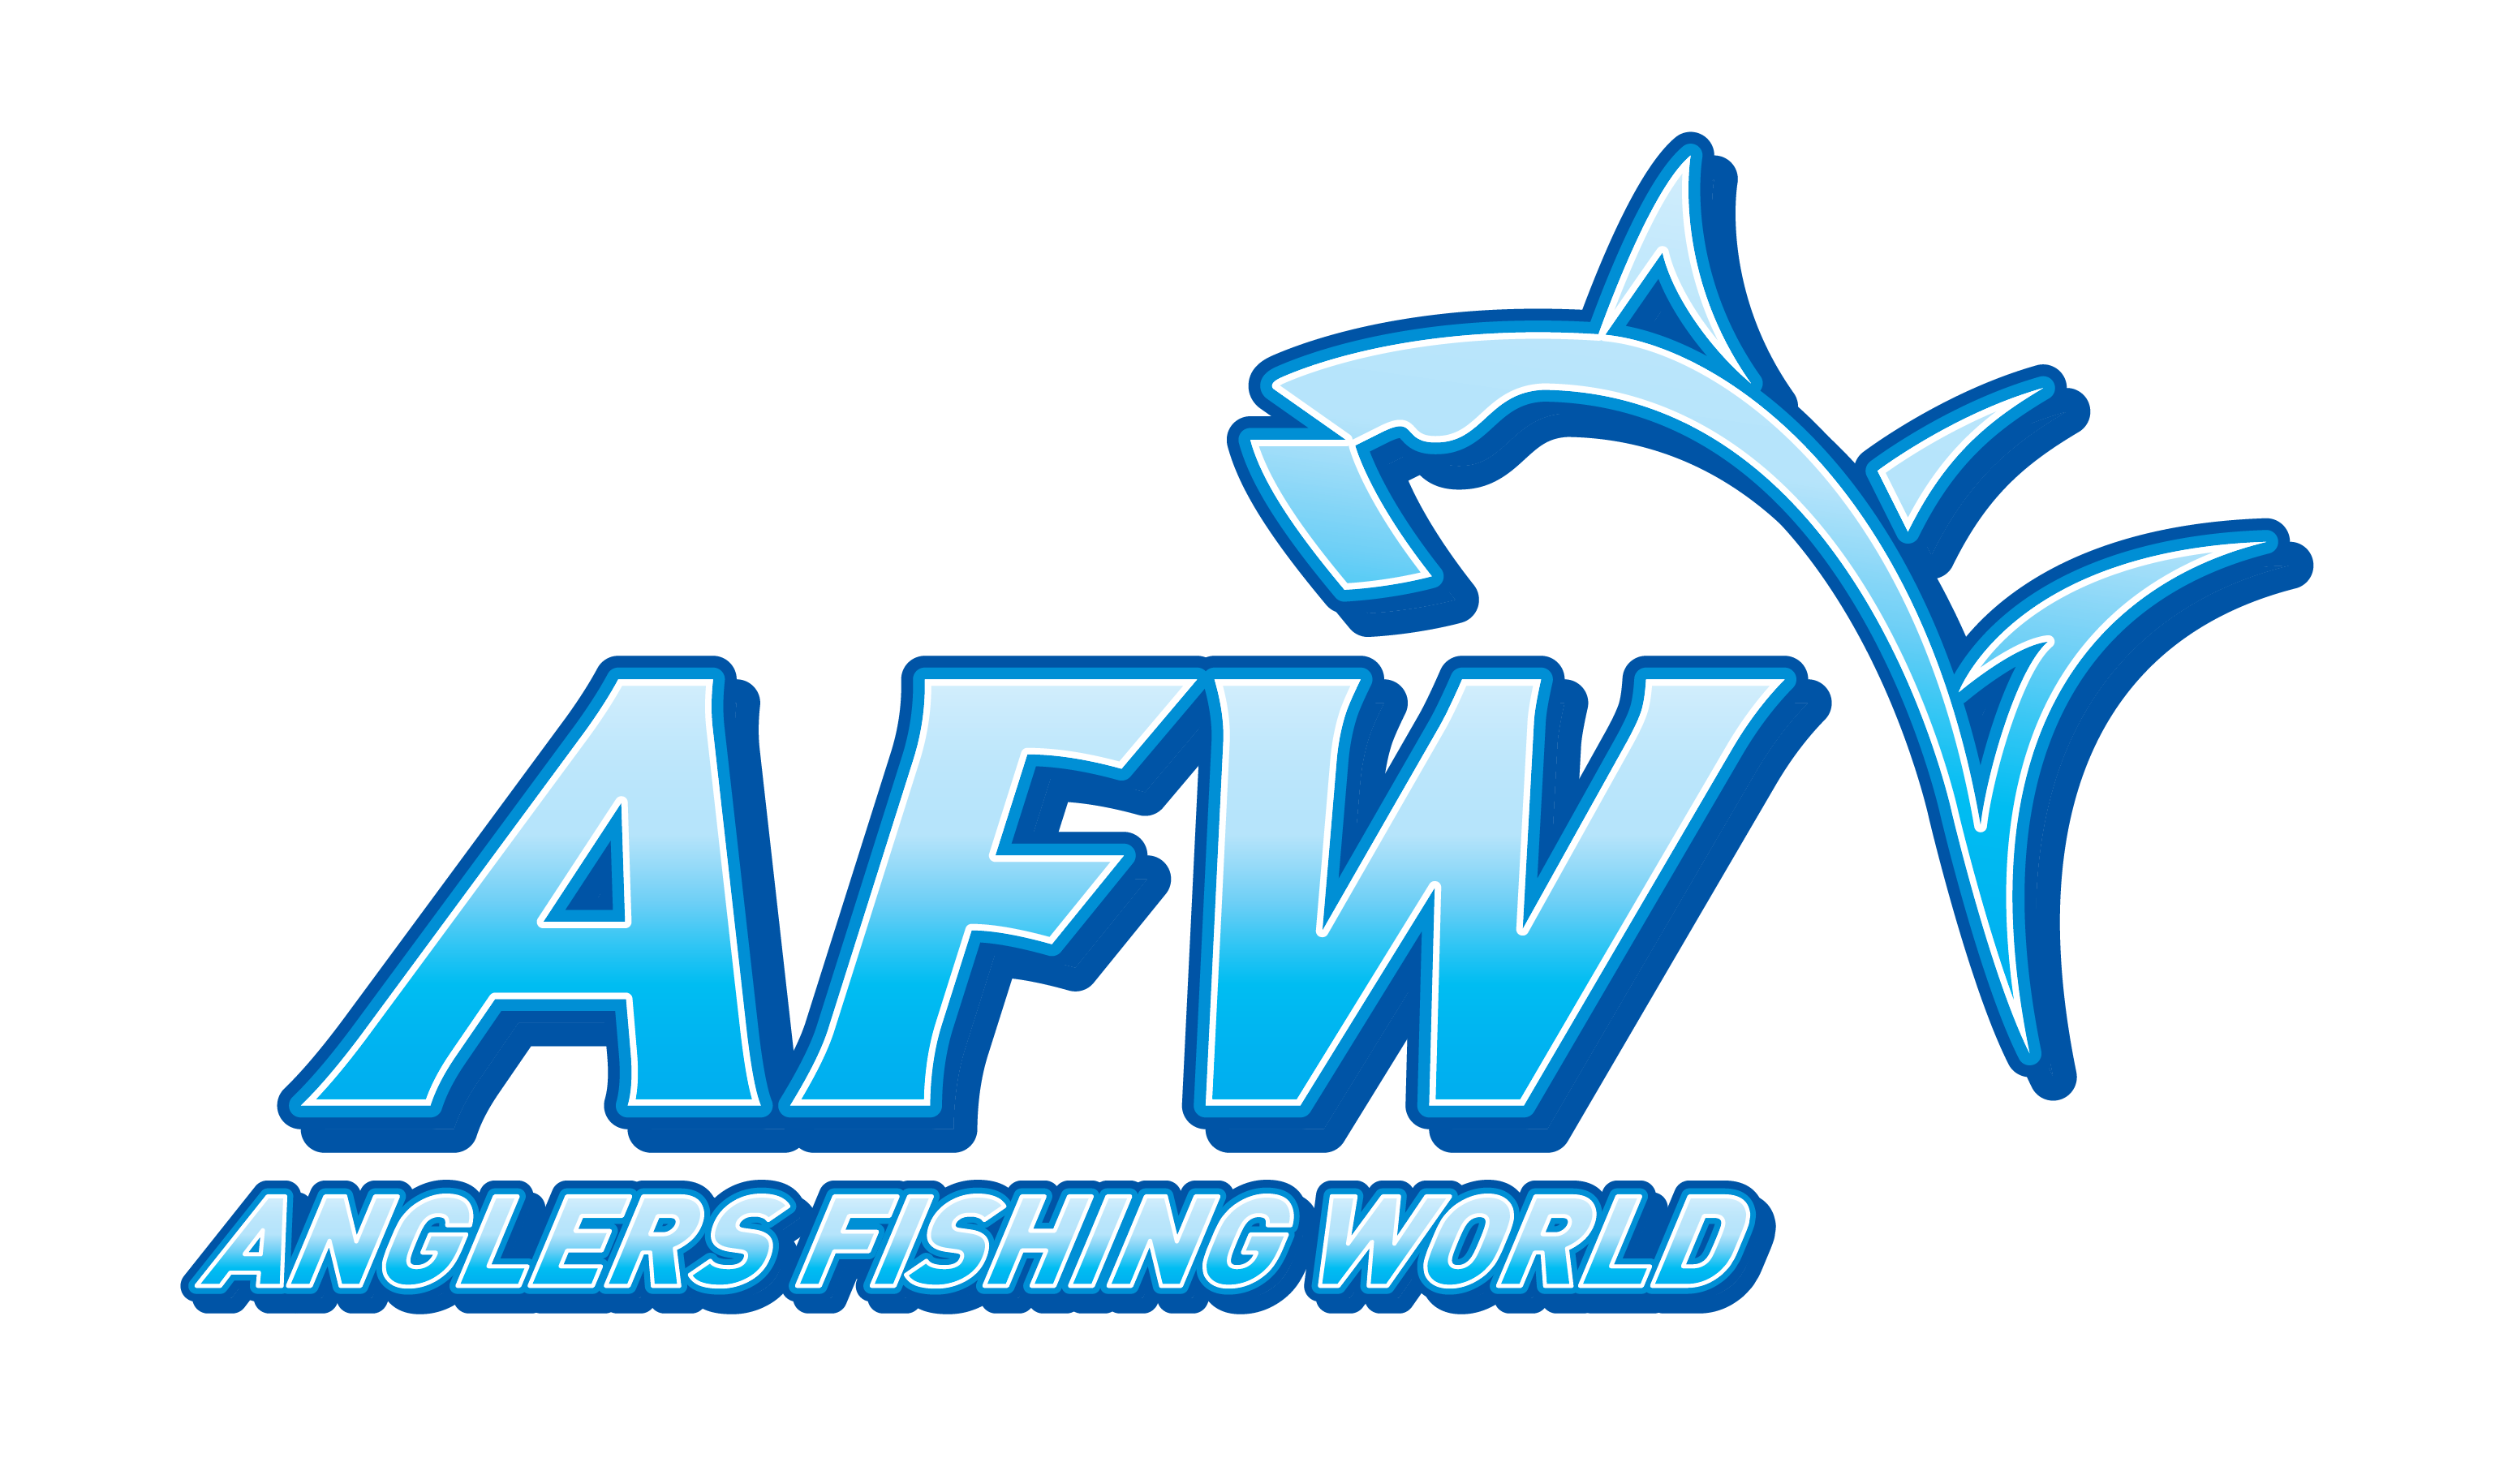 Anglers Fishing World